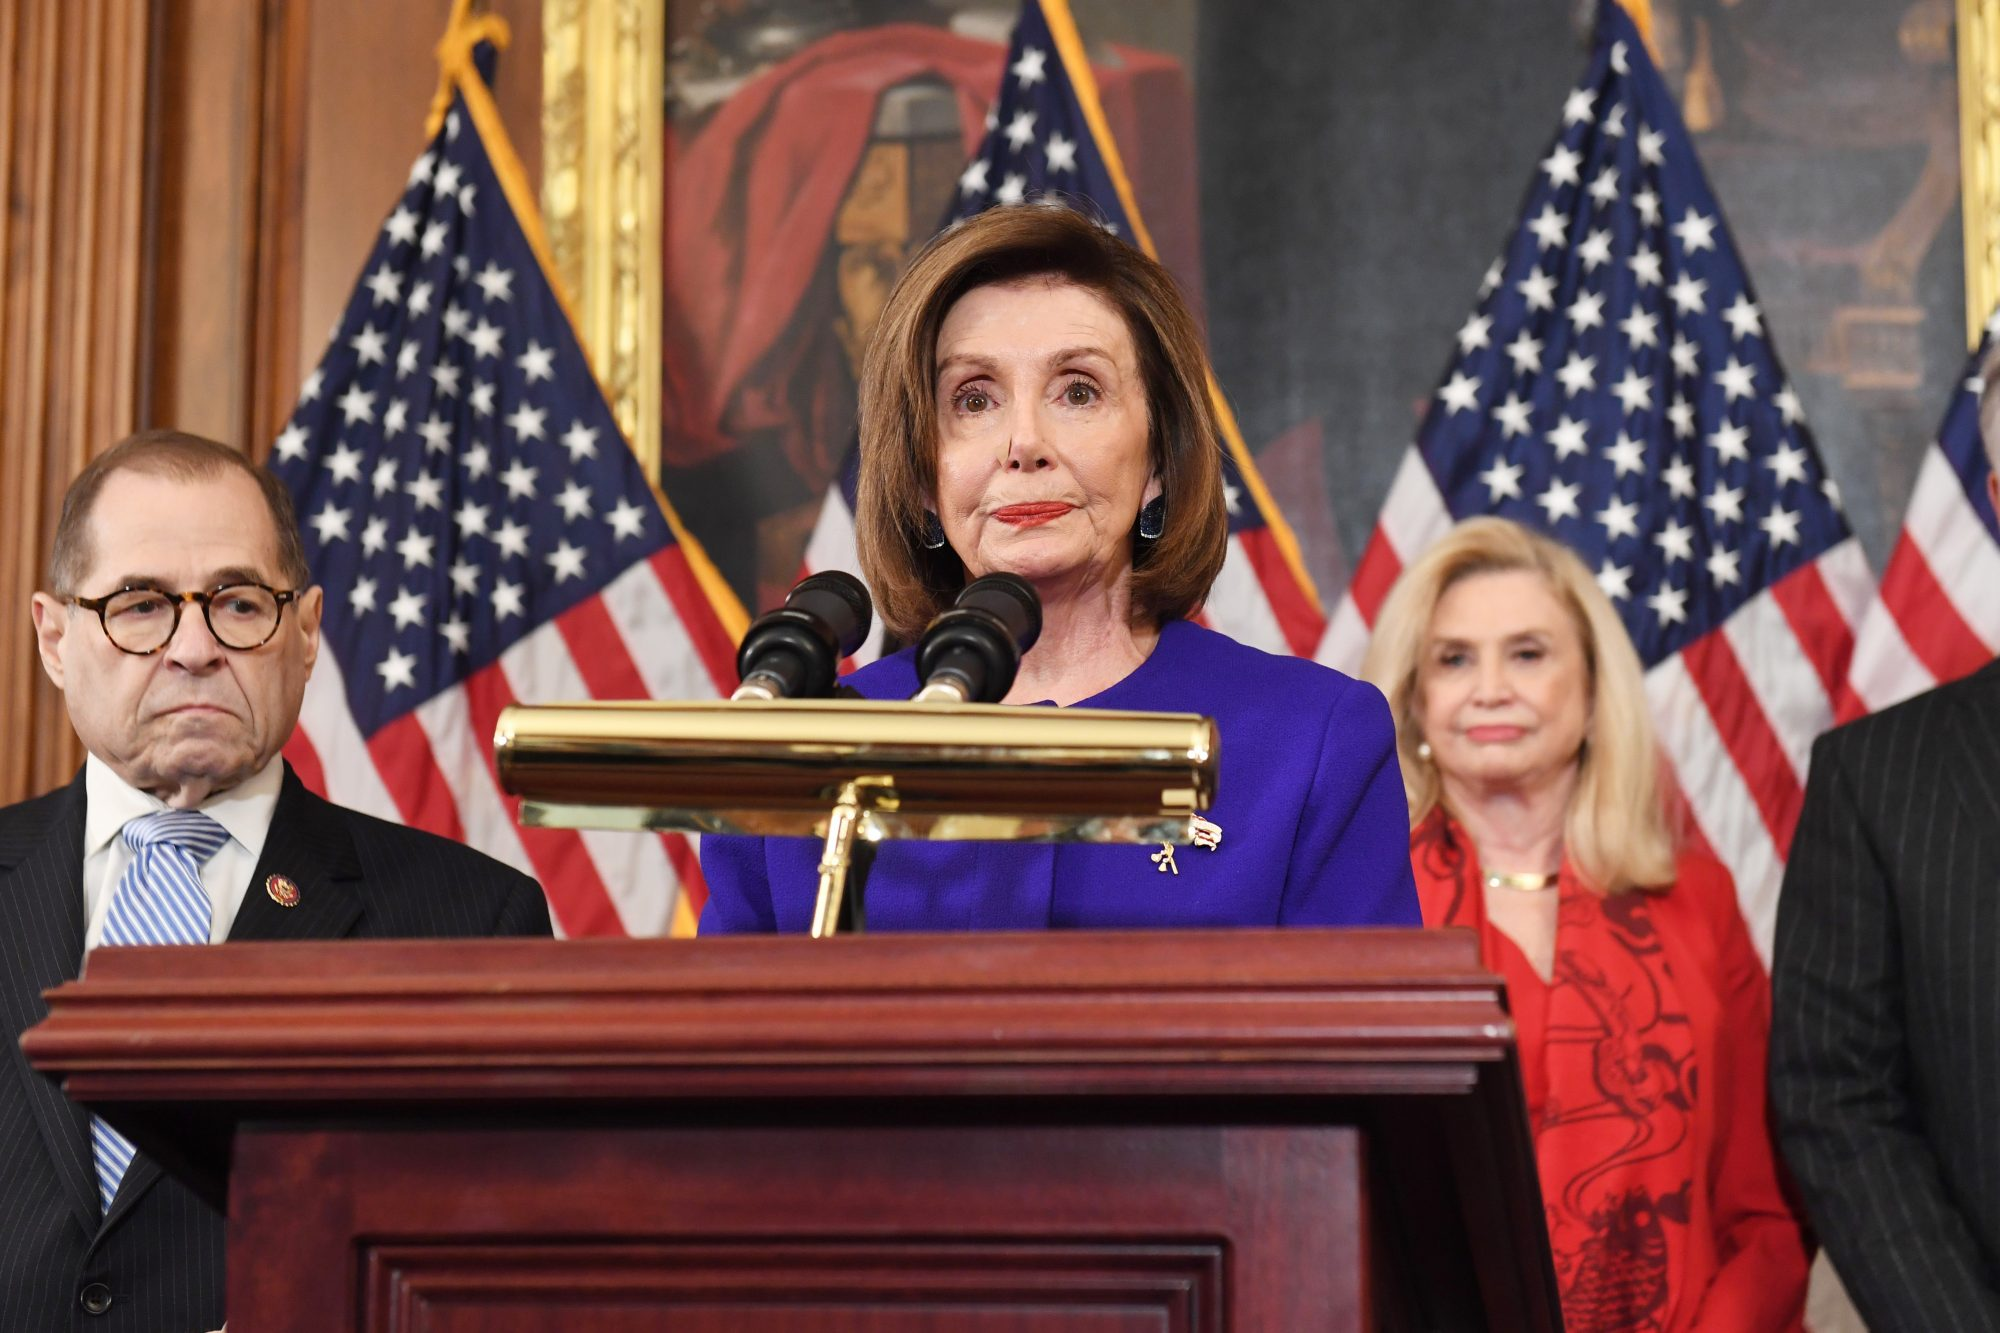 House Speaker Nancy Pelosi (D-CA) speaks next to House Judiciary Chairman Jerry Nadler(L), Democrat of New York, House Permanent Select Committee on Intelligence as they announce articles of impeachment for US President Donald Trump during a press conference at the US Capitol in Washington, DC, December 10, 2019. (Photo by SAUL LOEB / AFP) (Photo by SAUL LOEB/AFP via Getty Images)